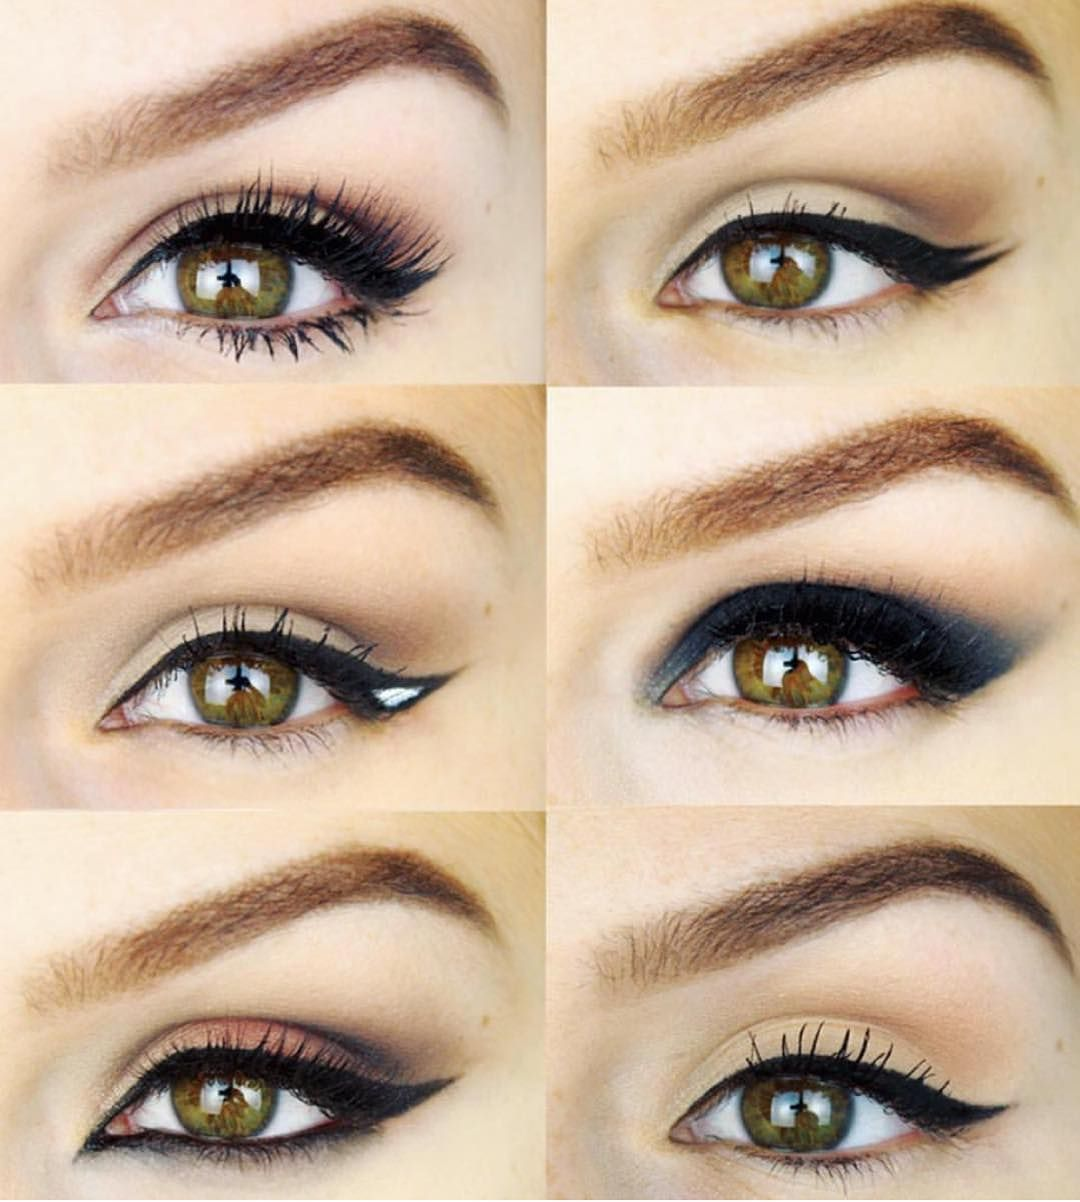 Inspirations Maquillages dHalloween | Maquillage Cynthia